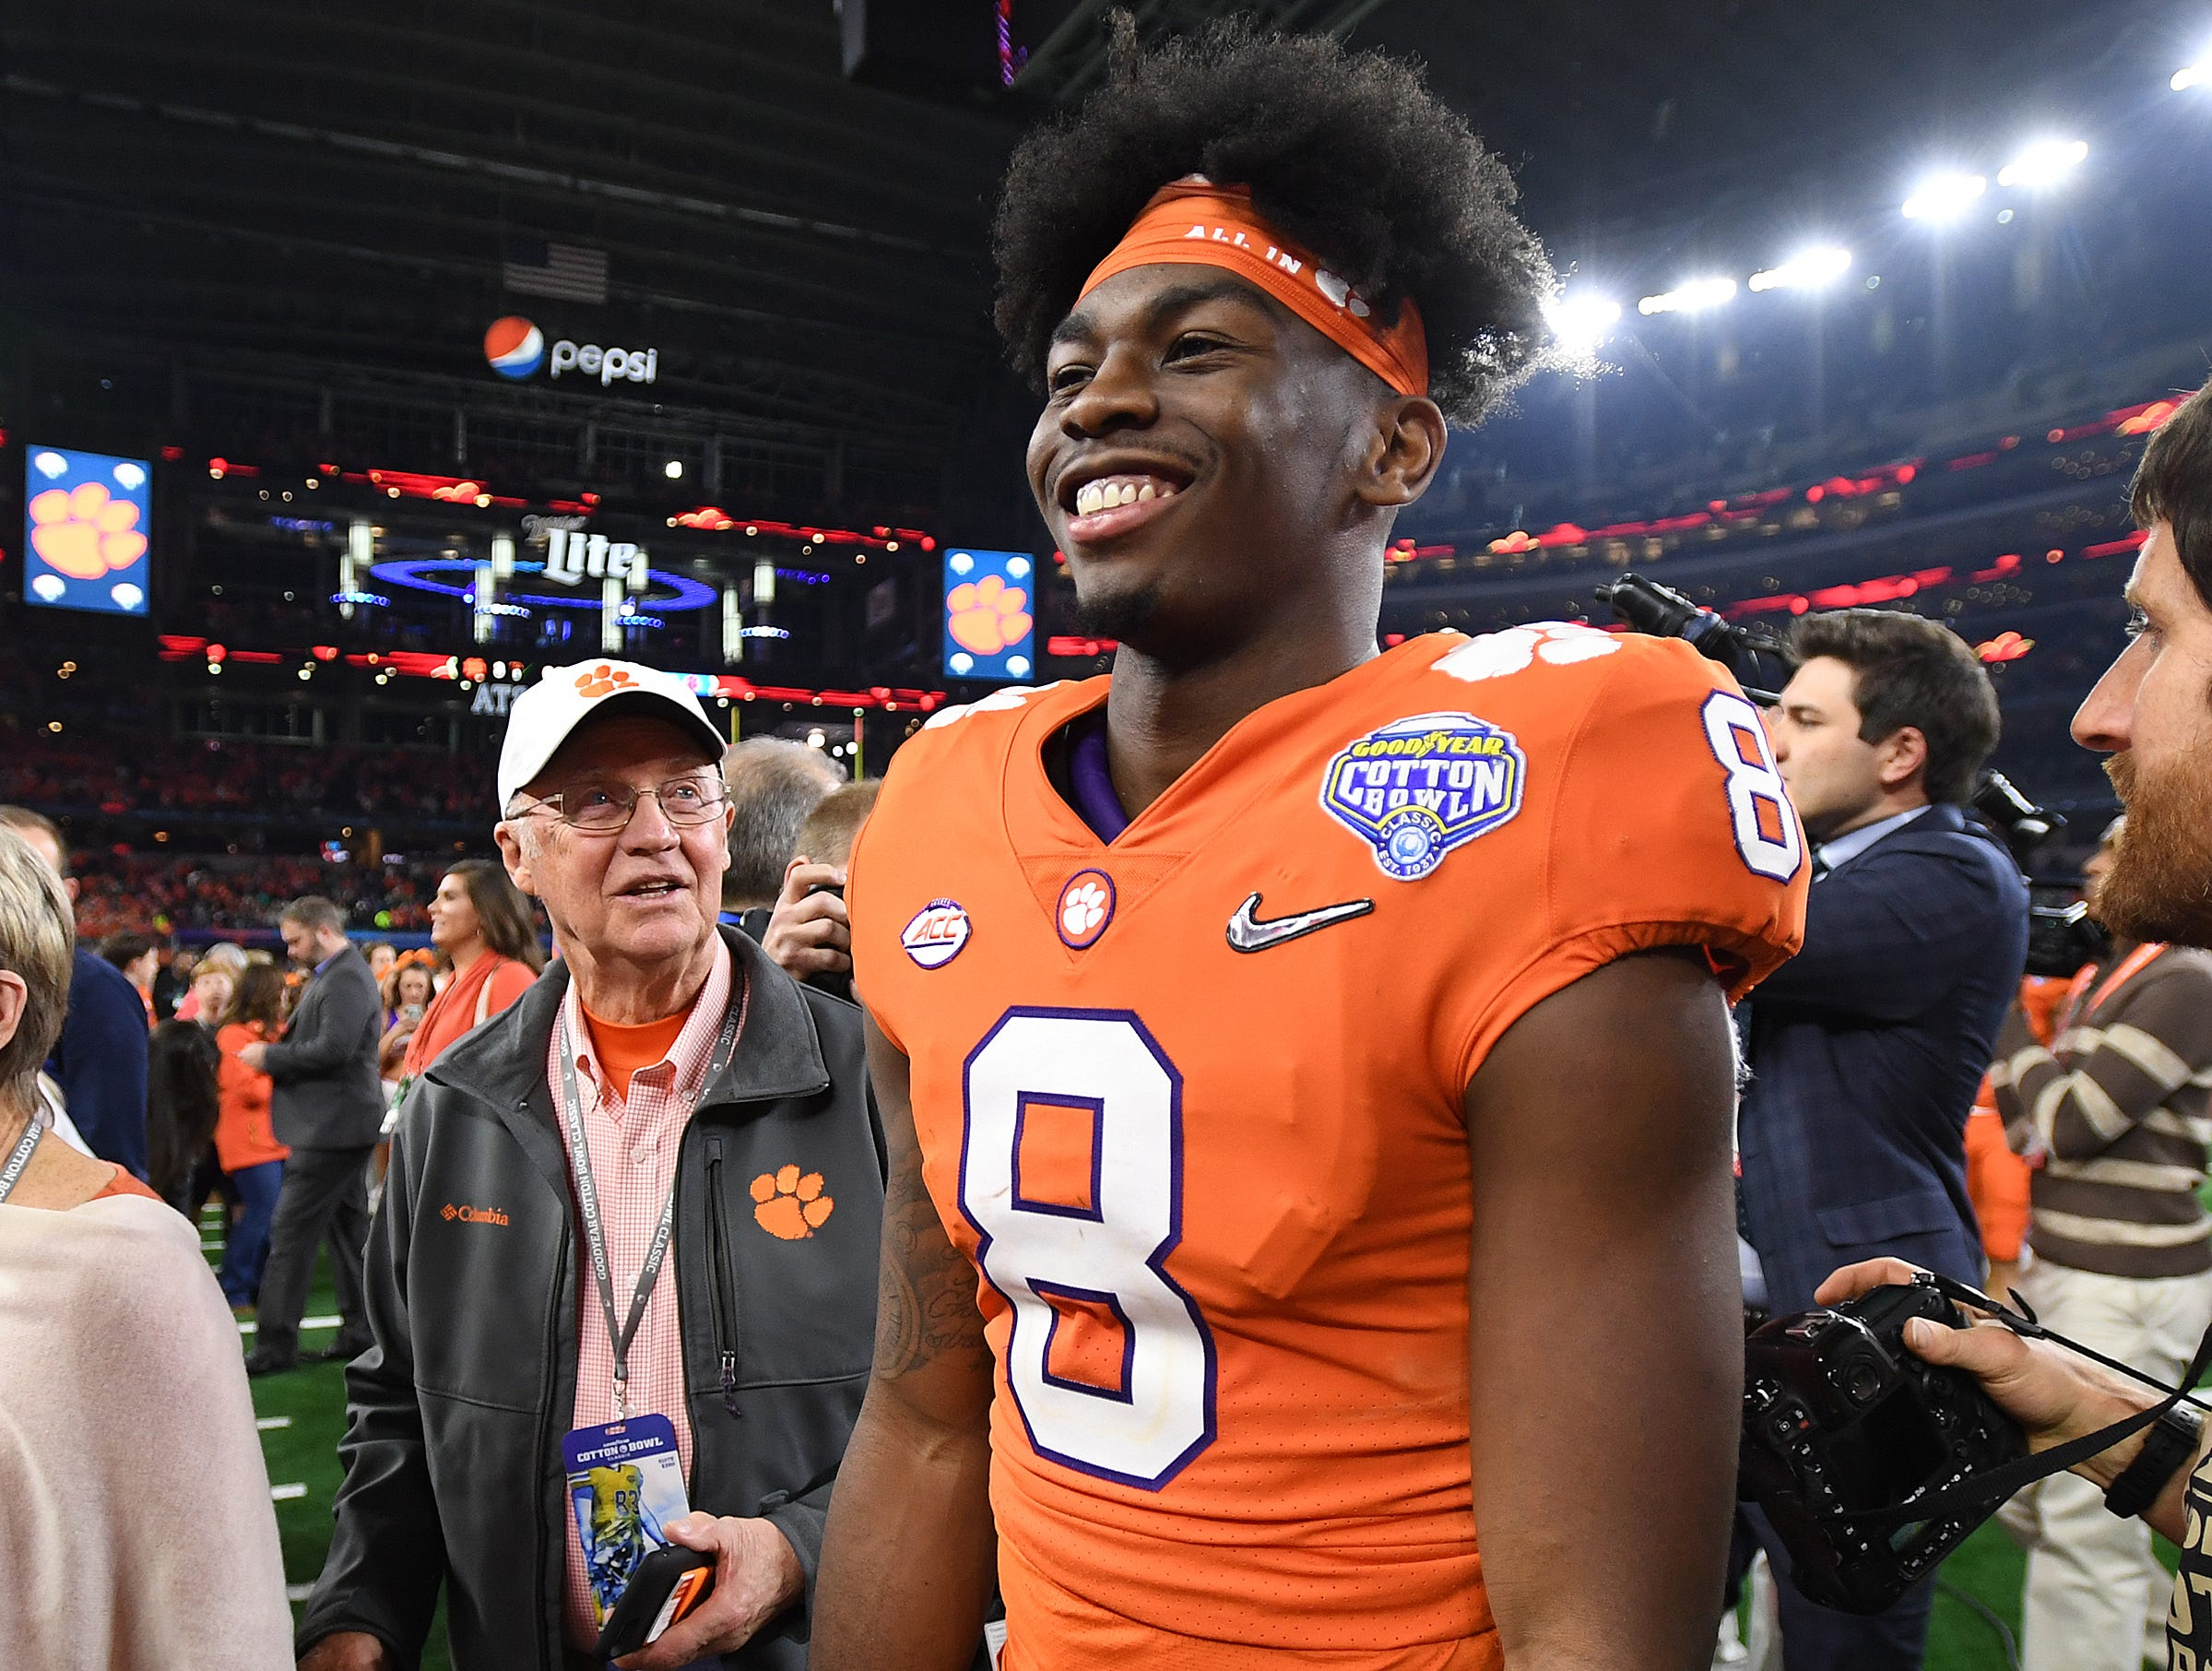 Clemson wide receiver Justyn Ross (8) after the Tigers 30-3 win over Notre Dame in the Goodyear Cotton Bowl at AT&T stadium in Arlington, TX Saturday, December 29, 2018.